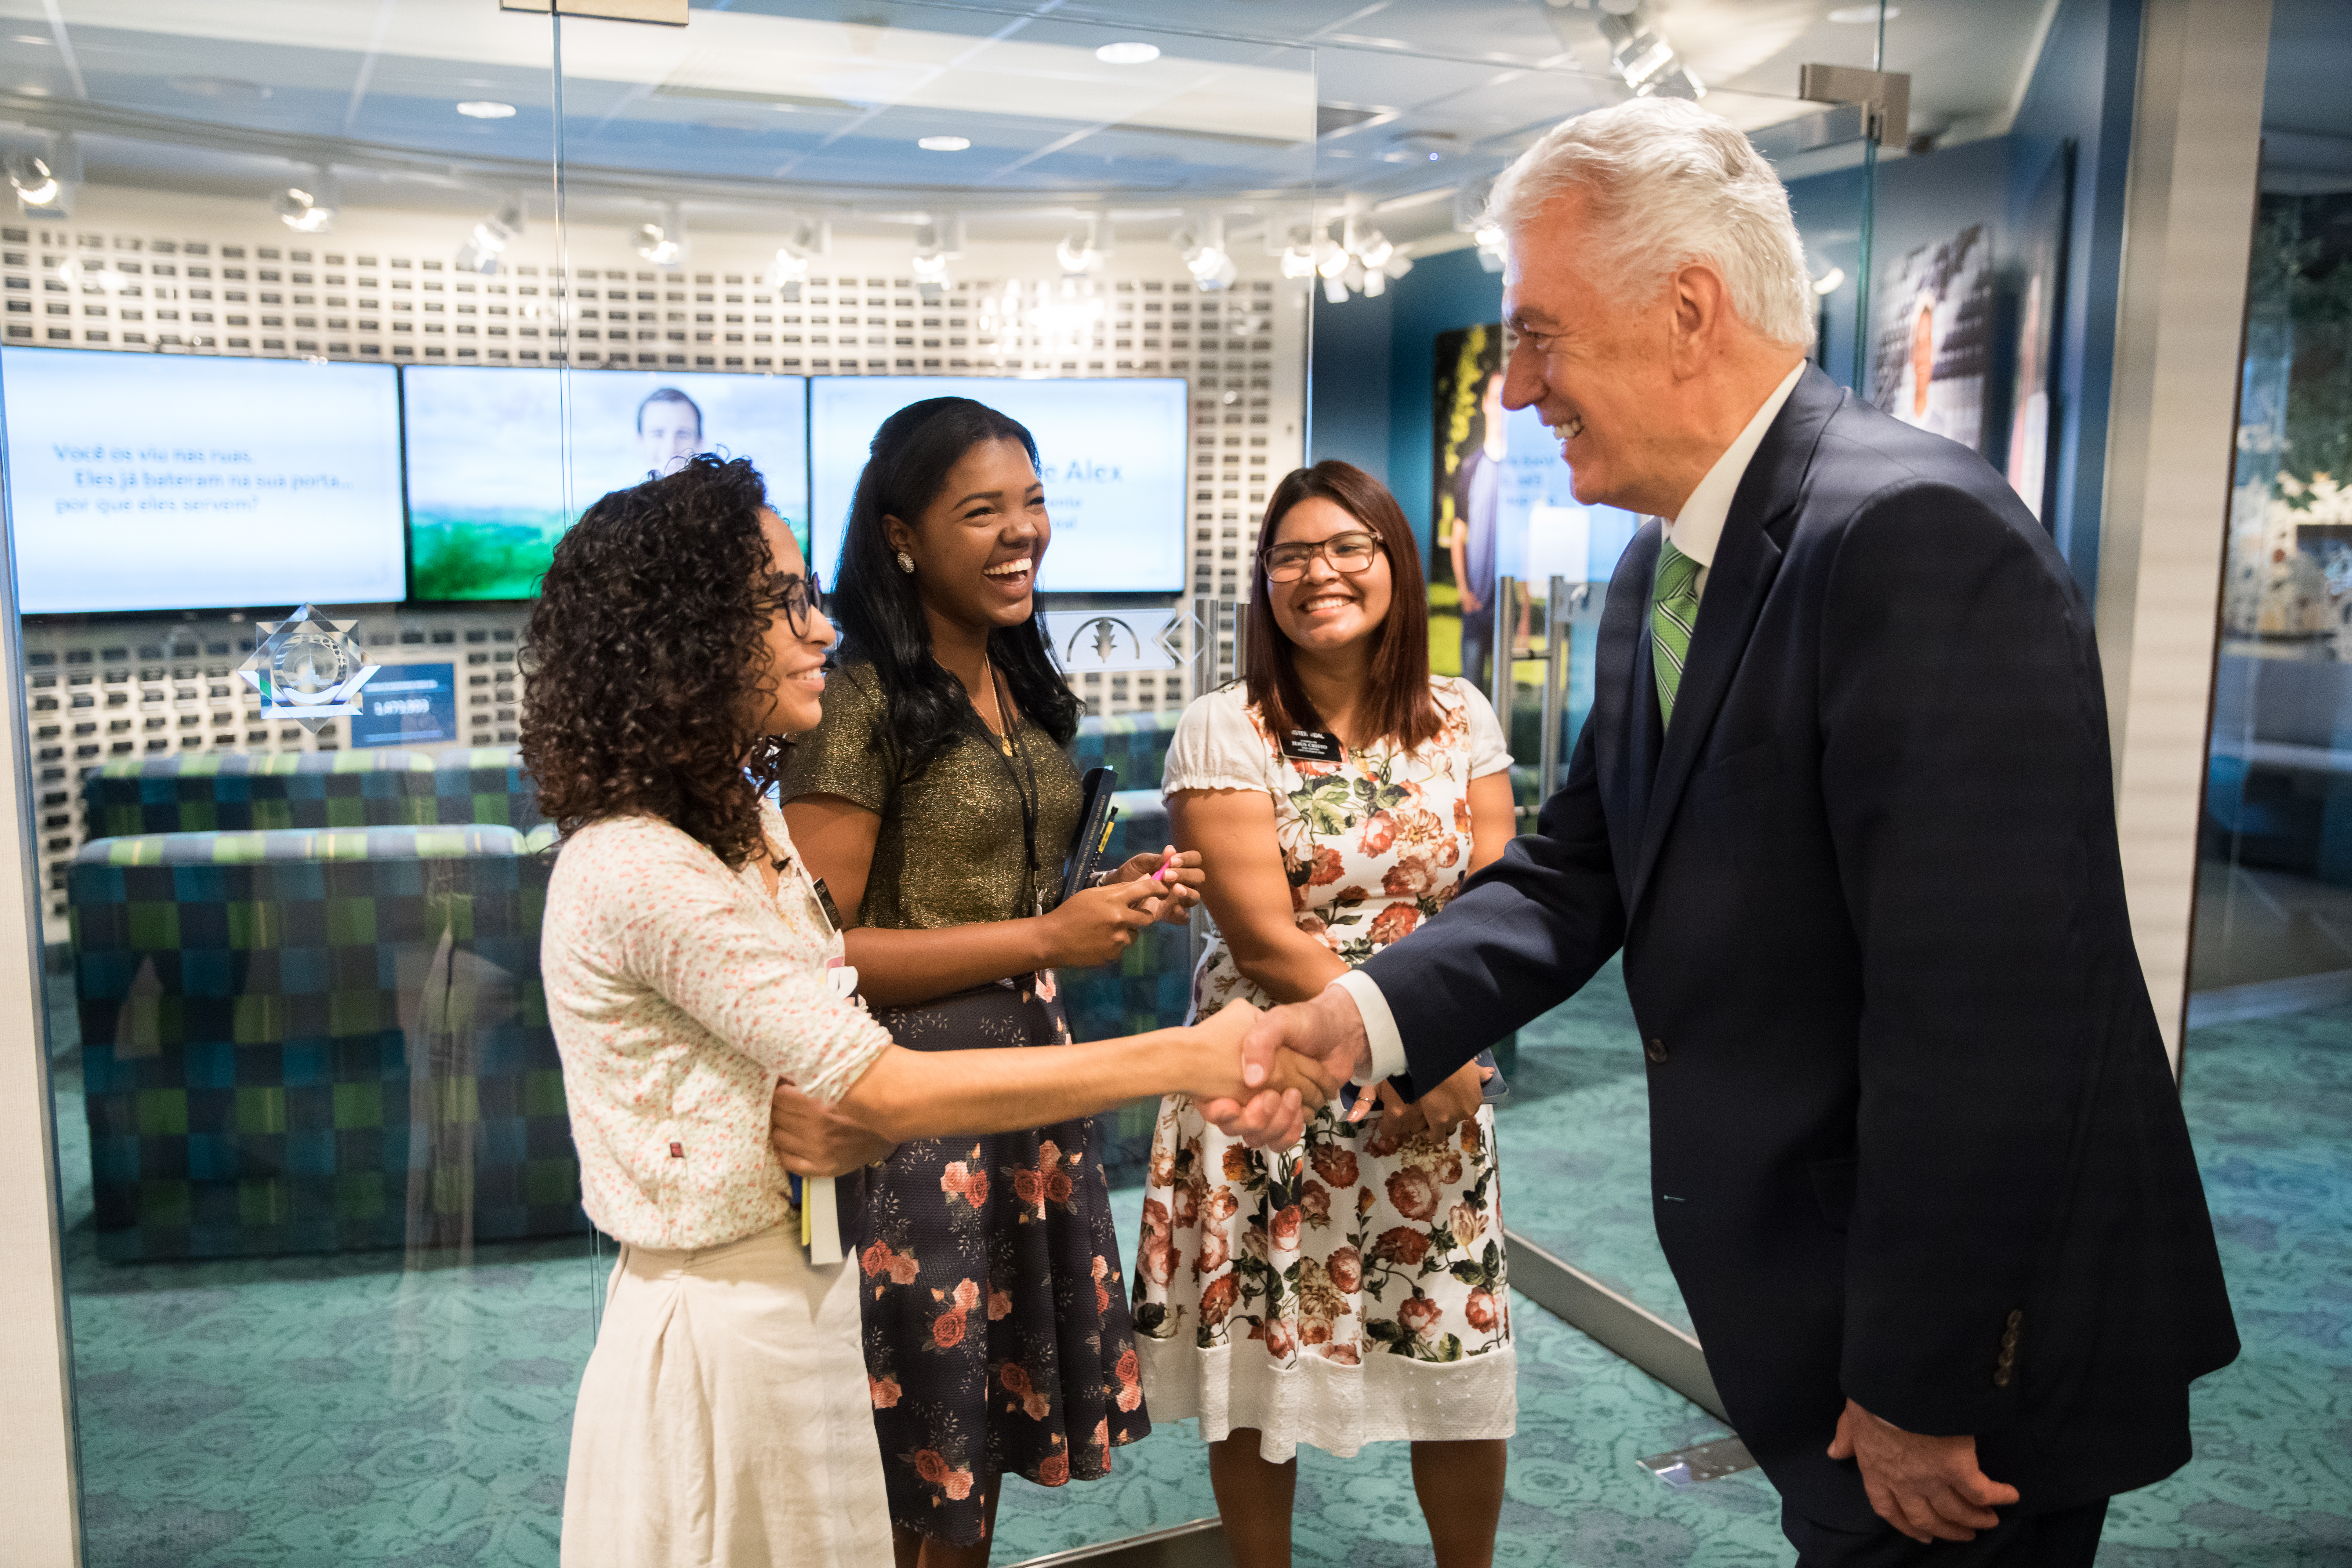 Elder Dieter F. Uchtdorf greets sister missionaries serving at the new Sao Paulo Brazil Temple Visitors' Center in February 2019.